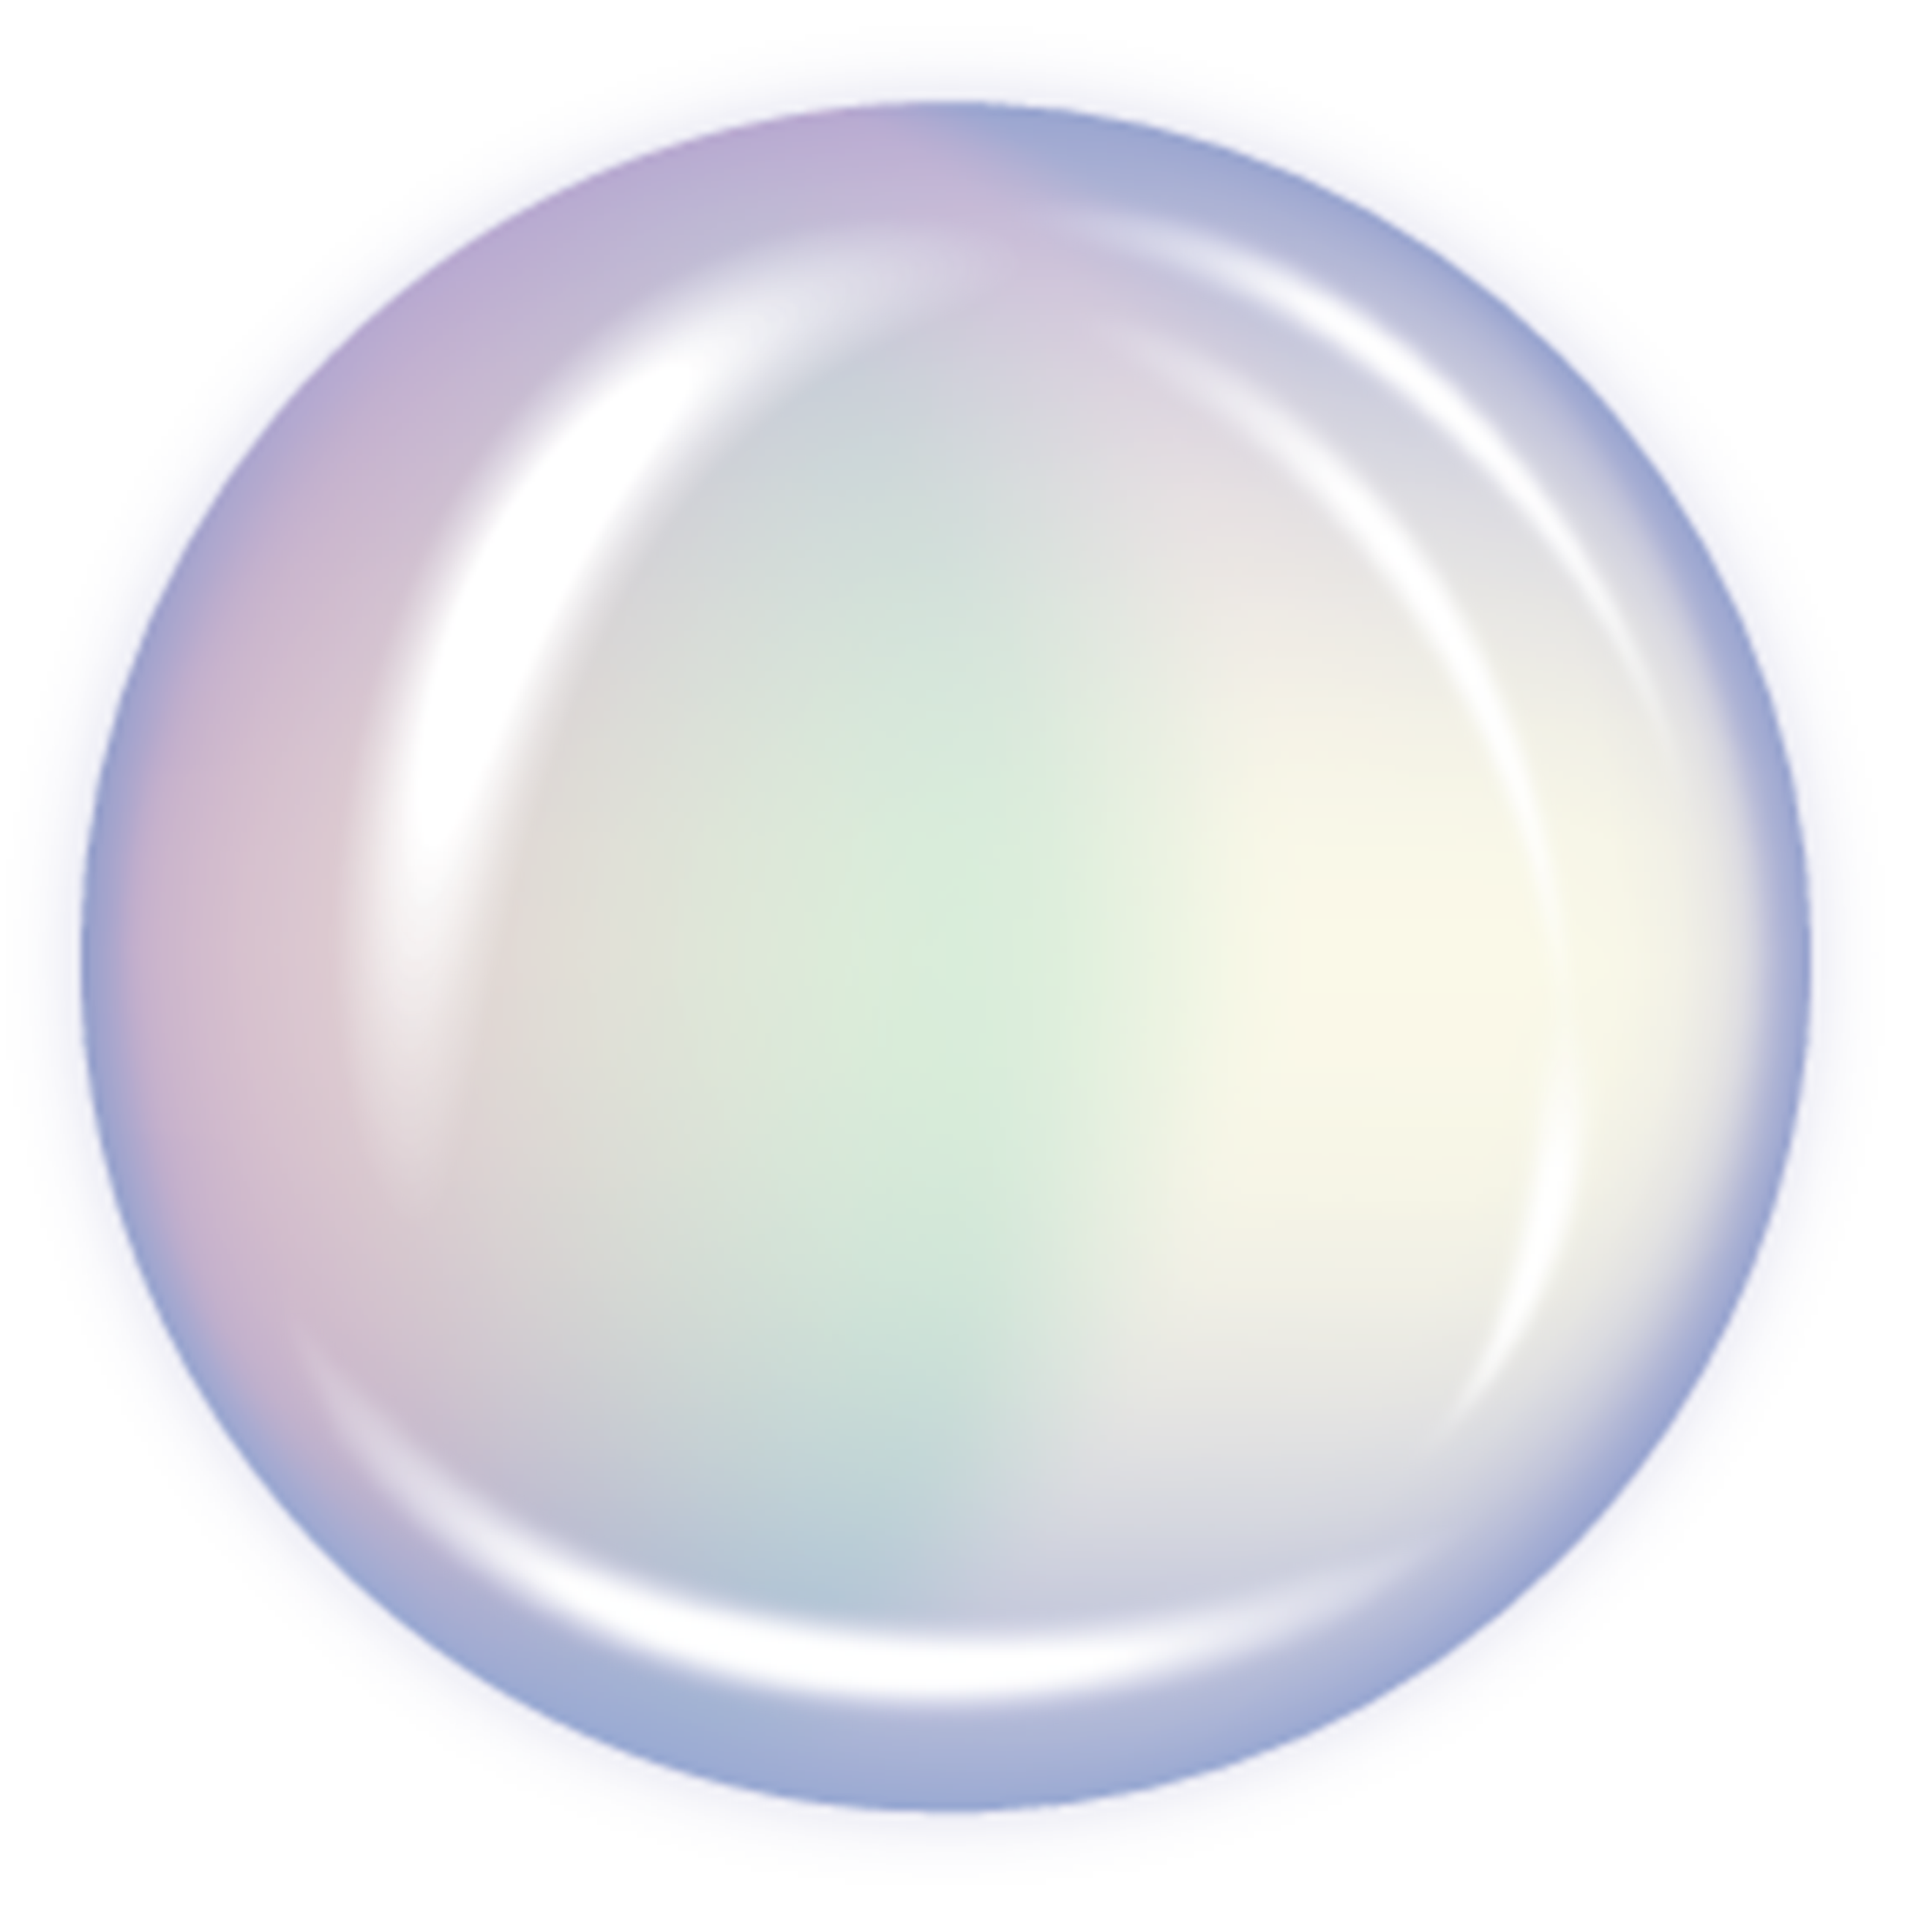 Transparent bubble png. Clip art creation creatures